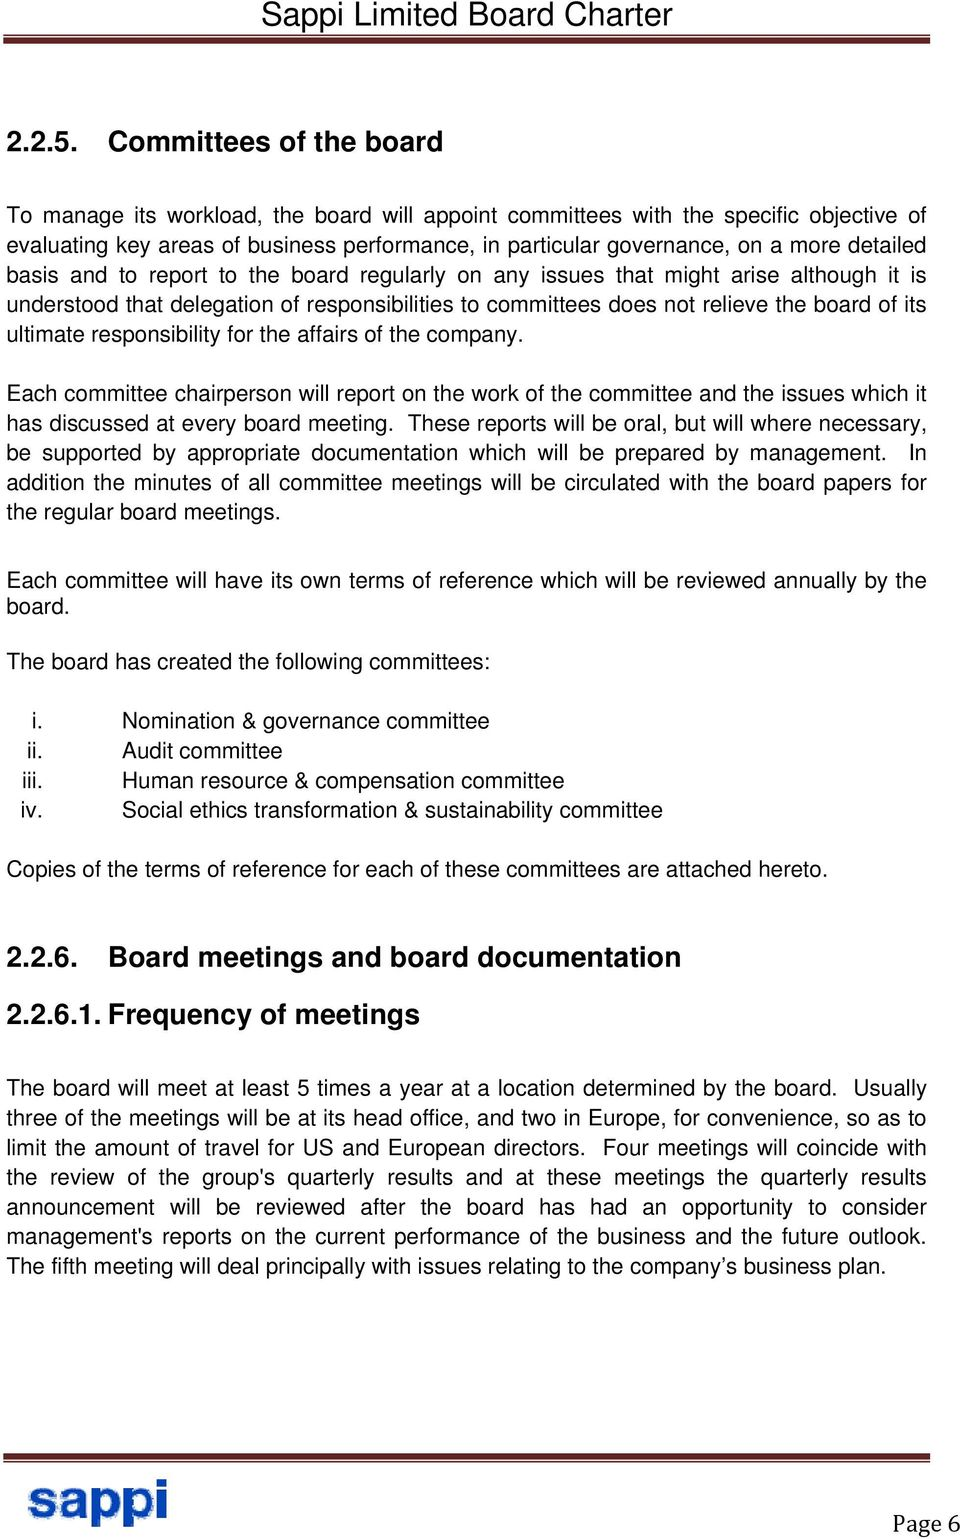 detailed basis and to report to the board regularly on any issues that might arise although it is understood that delegation of responsibilities to committees does not relieve the board of its